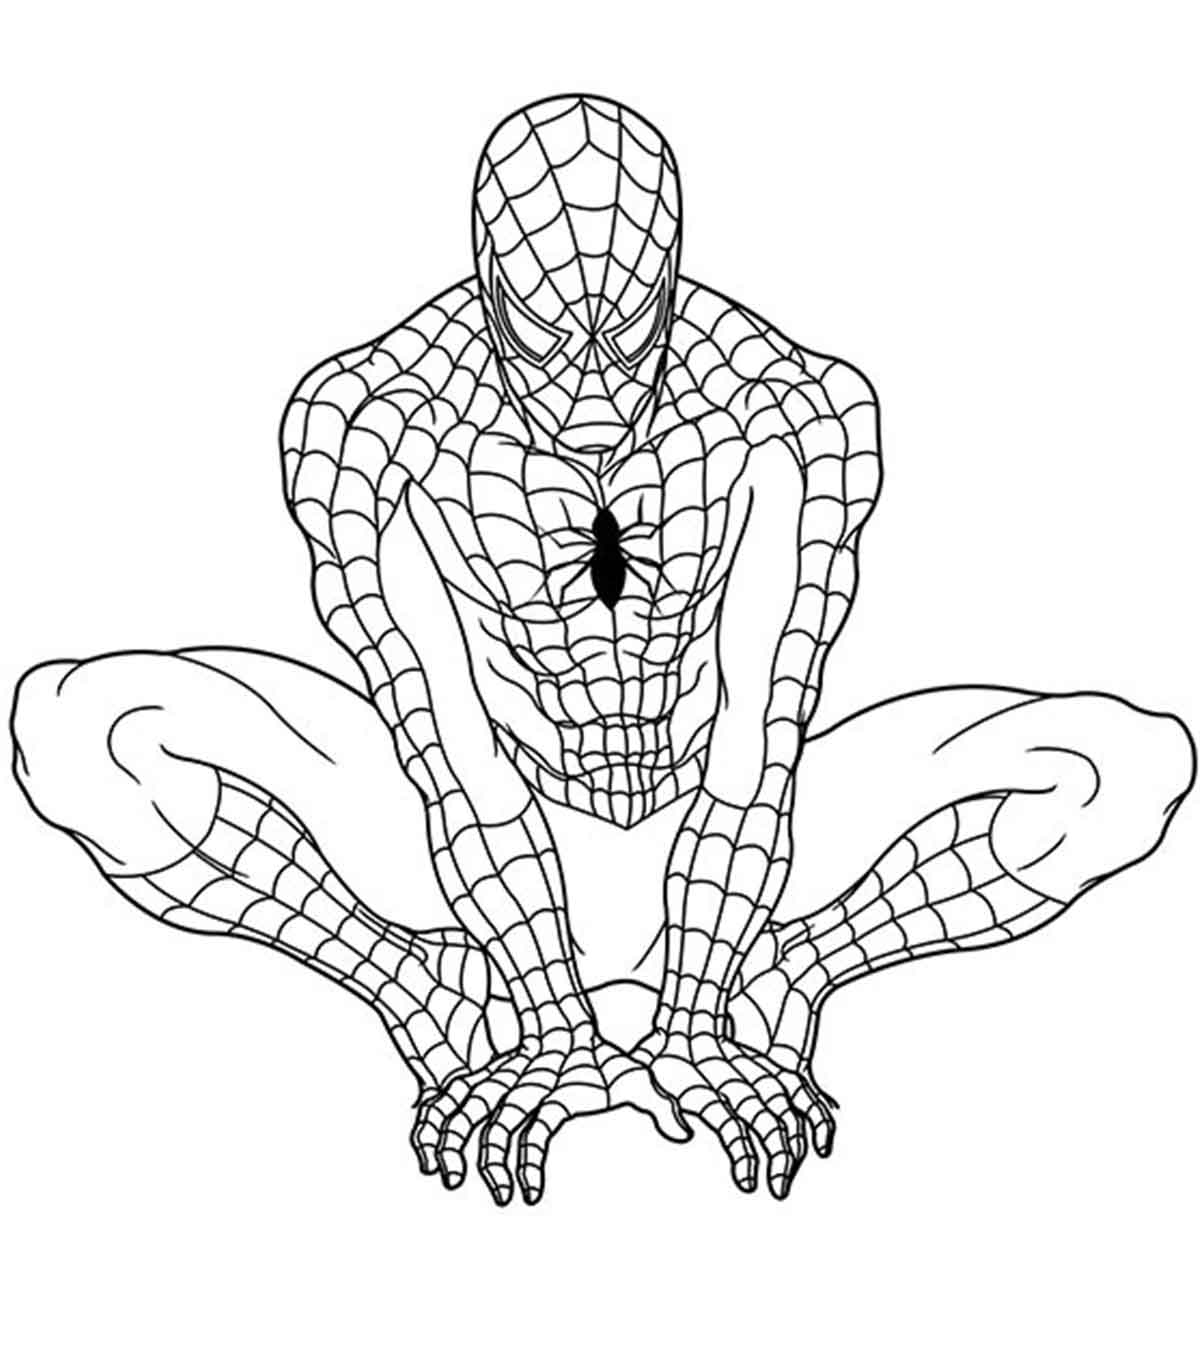 coloring pages for kids super heros printable superhero coloring pages for kids sketch super heros for pages kids coloring